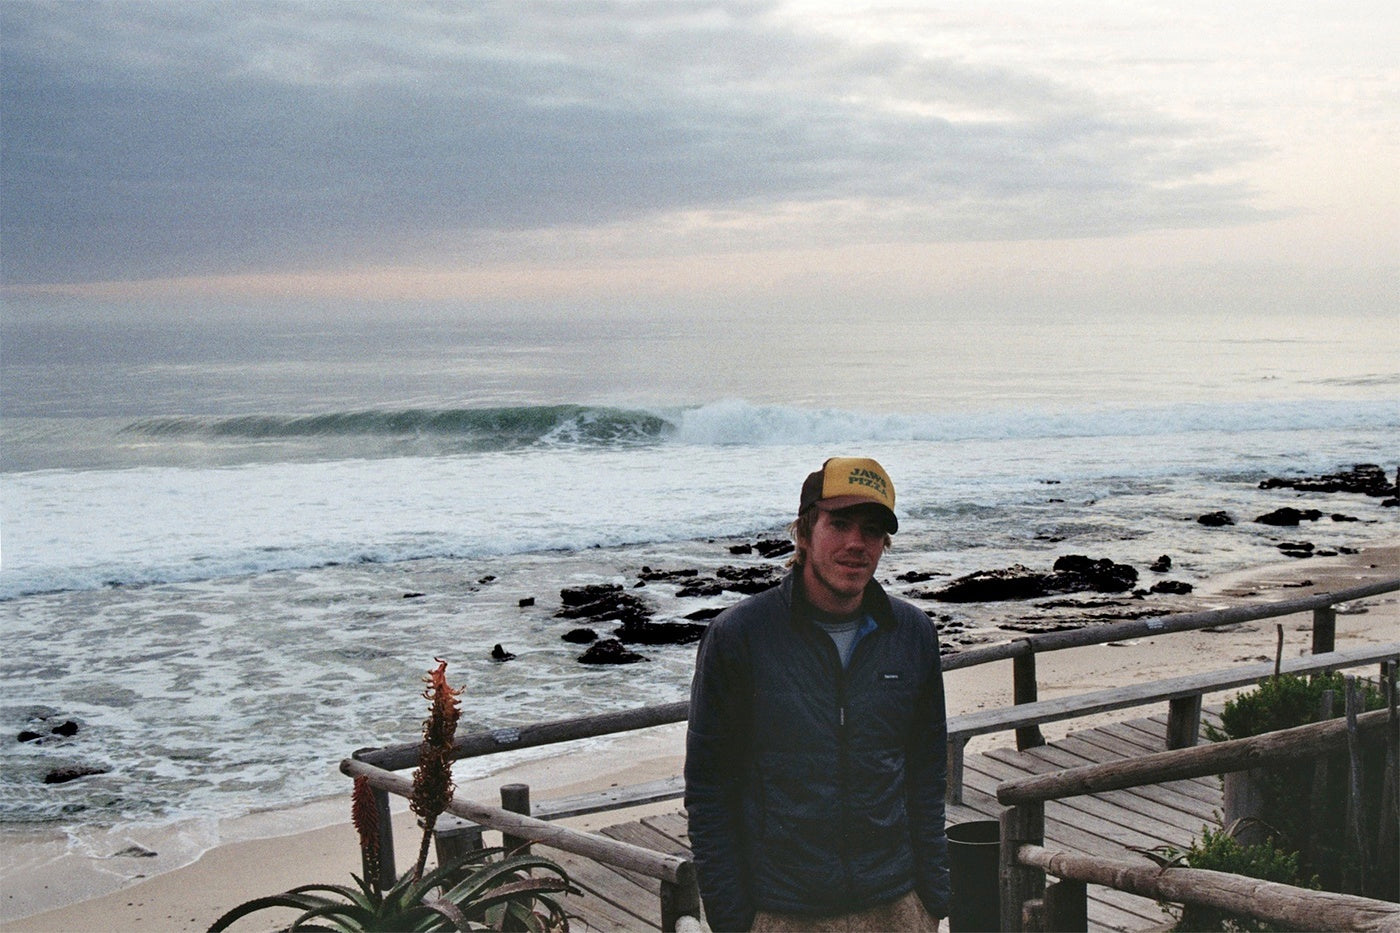 Mat Arney wearing his faithful Finisterre Etobicoke jacket at J Bay in South Africa